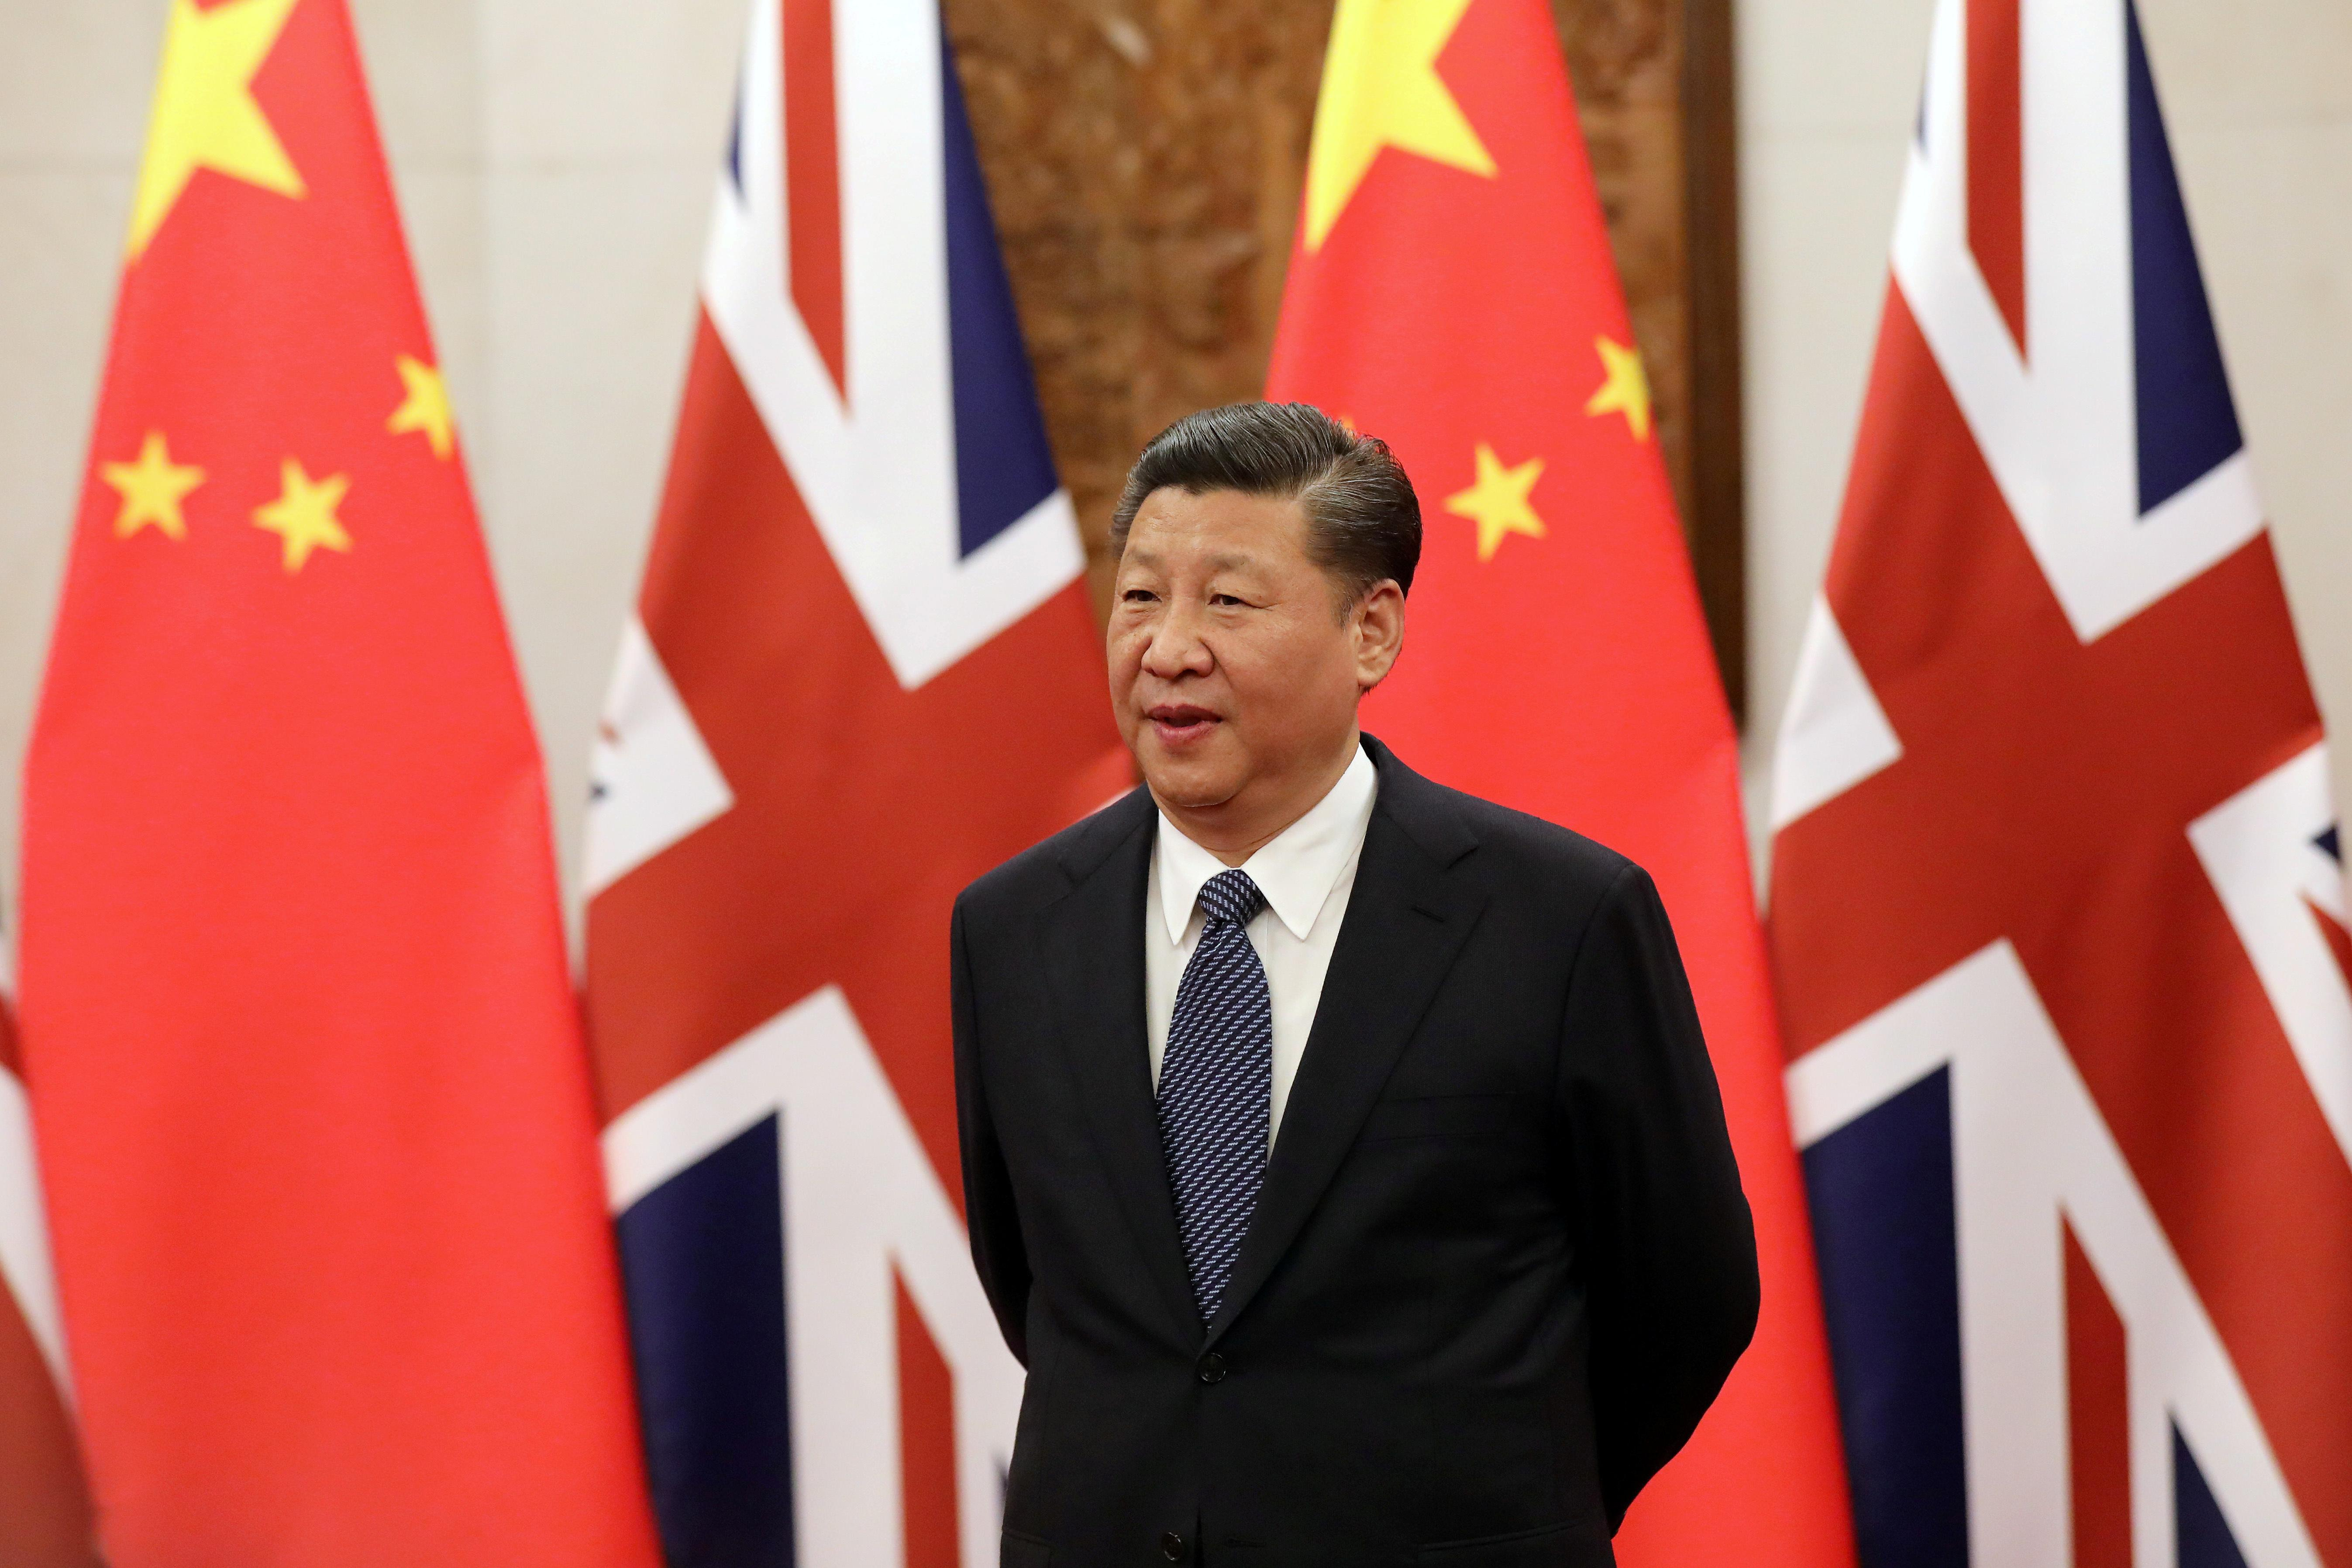 Why Xi Jinping could well become 'emperor' of China: 10 points